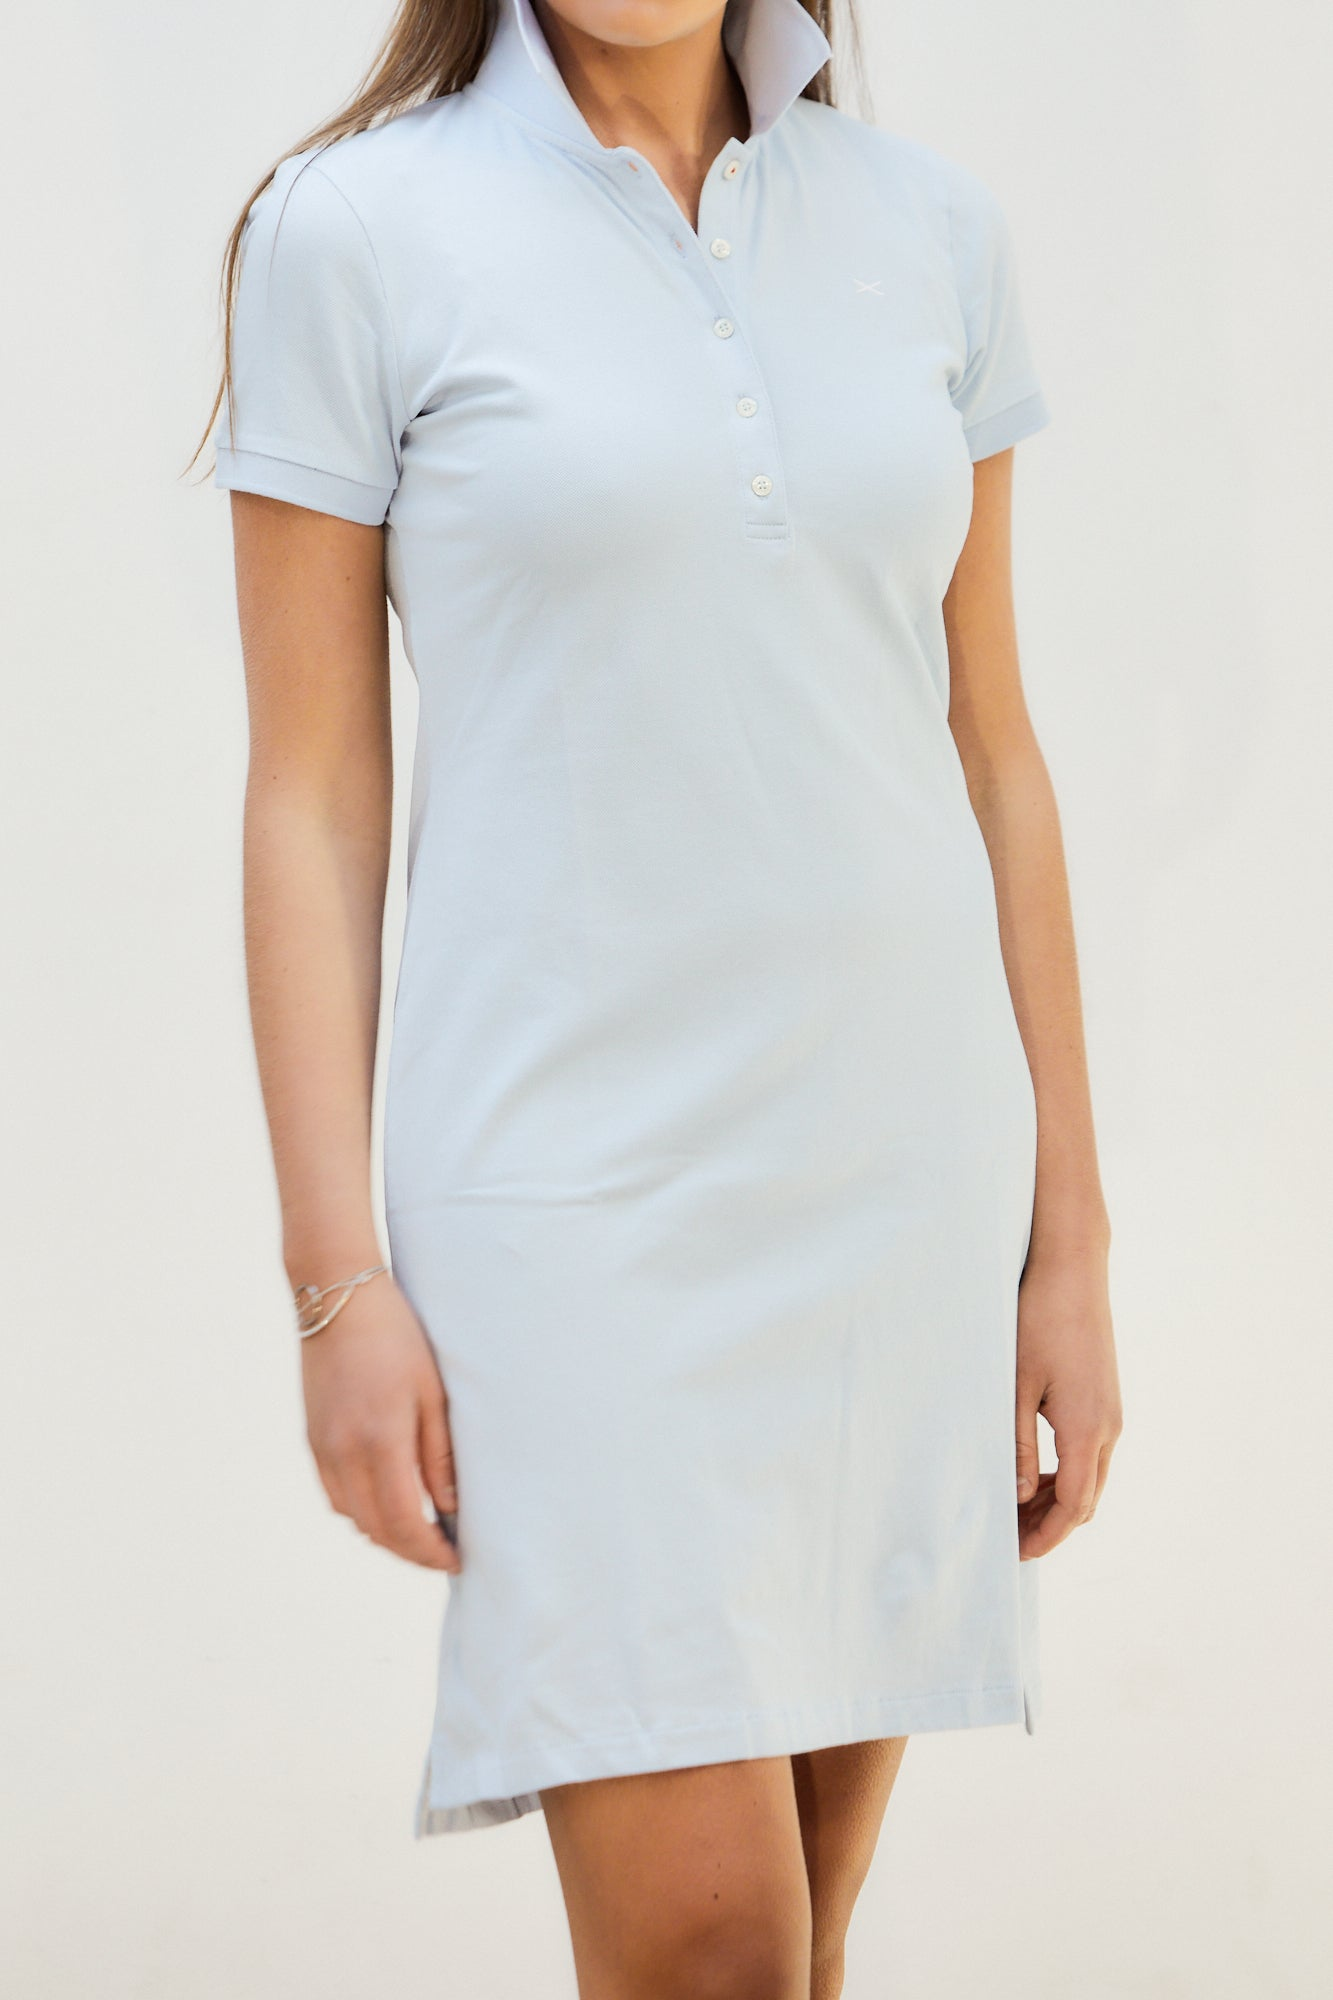 POLO DRESS HAYDN - Dresses - SCAPA FASHION - SCAPA OFFICIAL